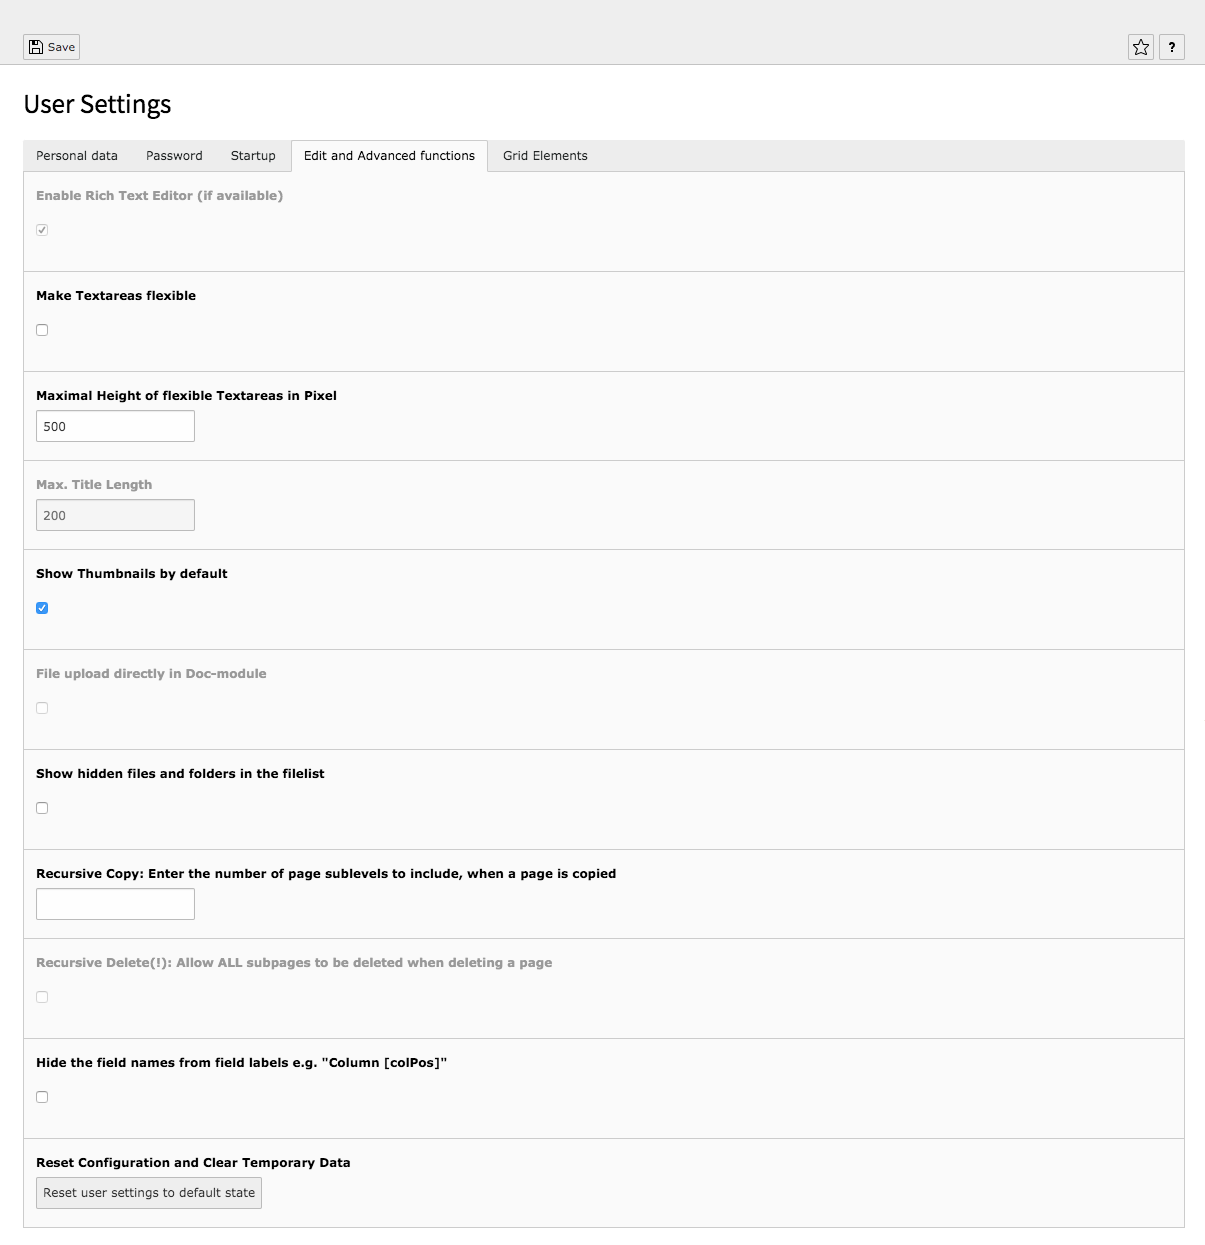 TYPO3 User Settings Tab Edit and Advanced functions